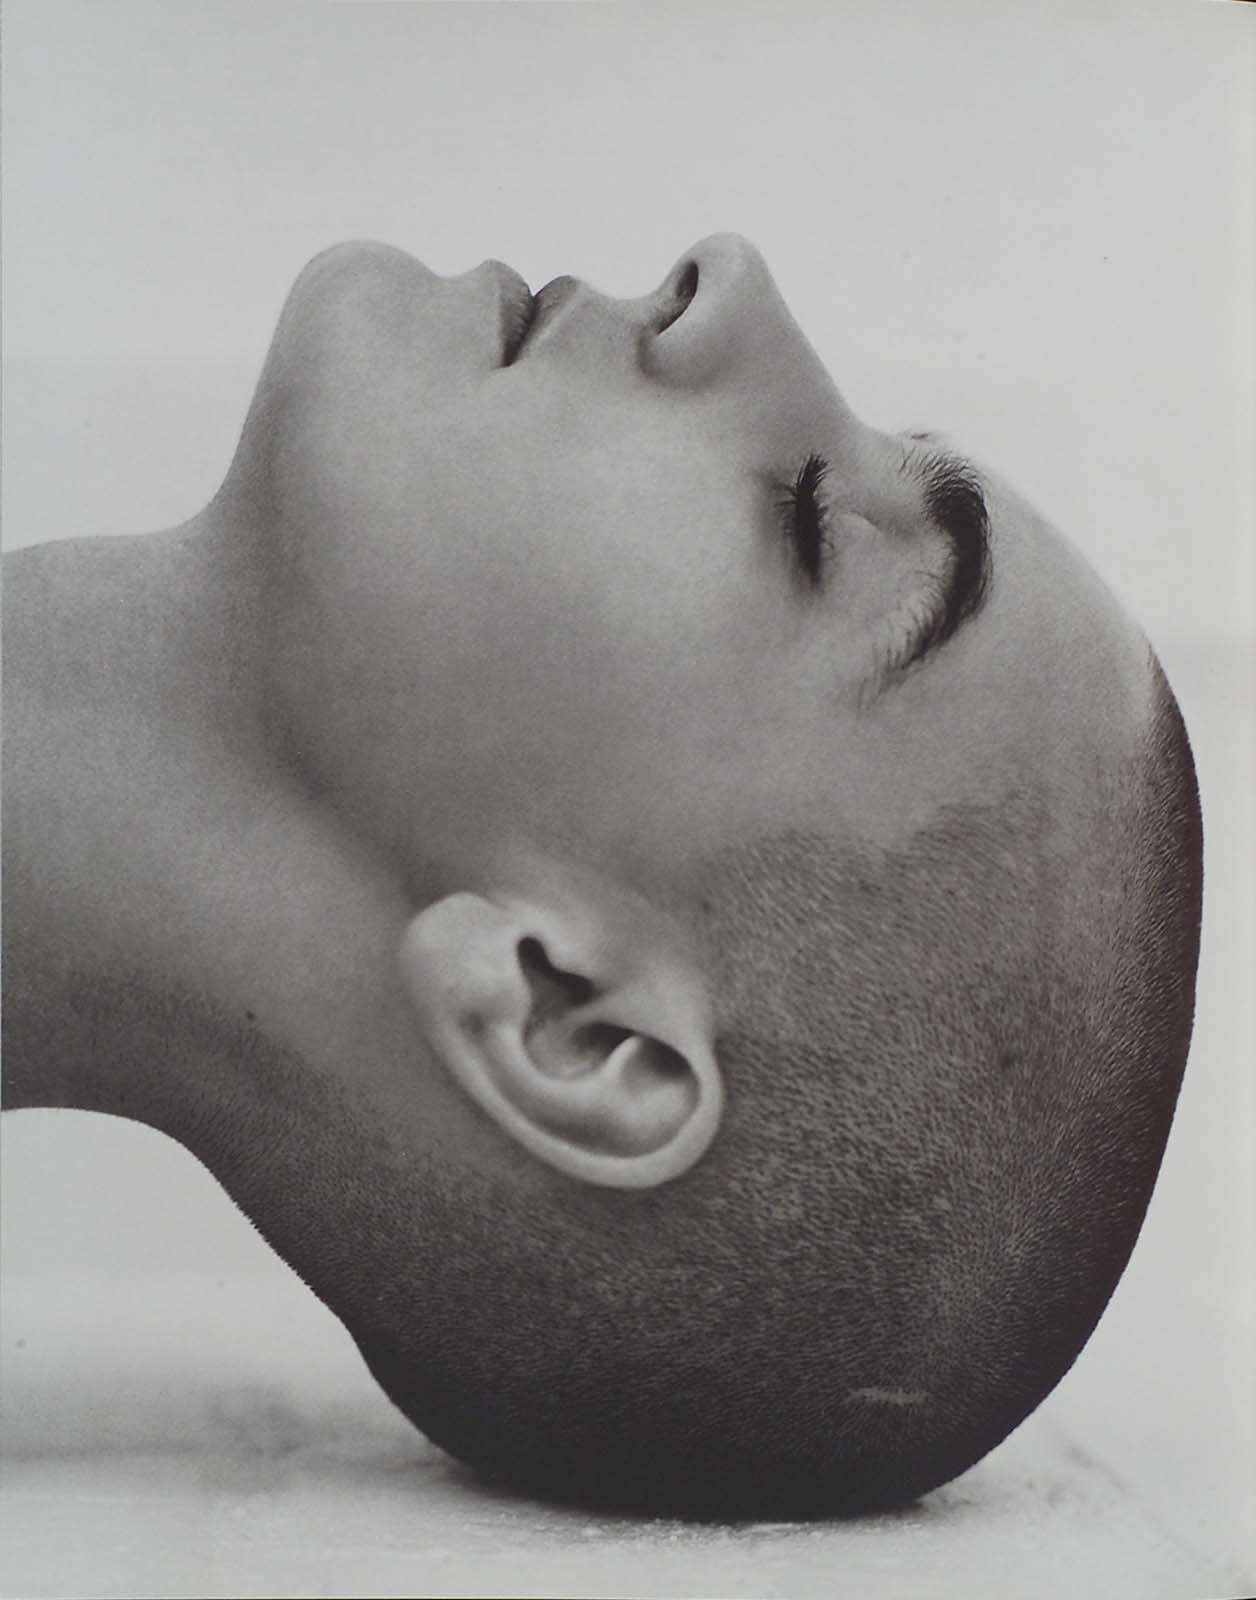 Herb Ritts began his photographic career in the late 1970s, and in addition to producing portraits and editorial fashion for Vogue, Vanity Fair, Inter